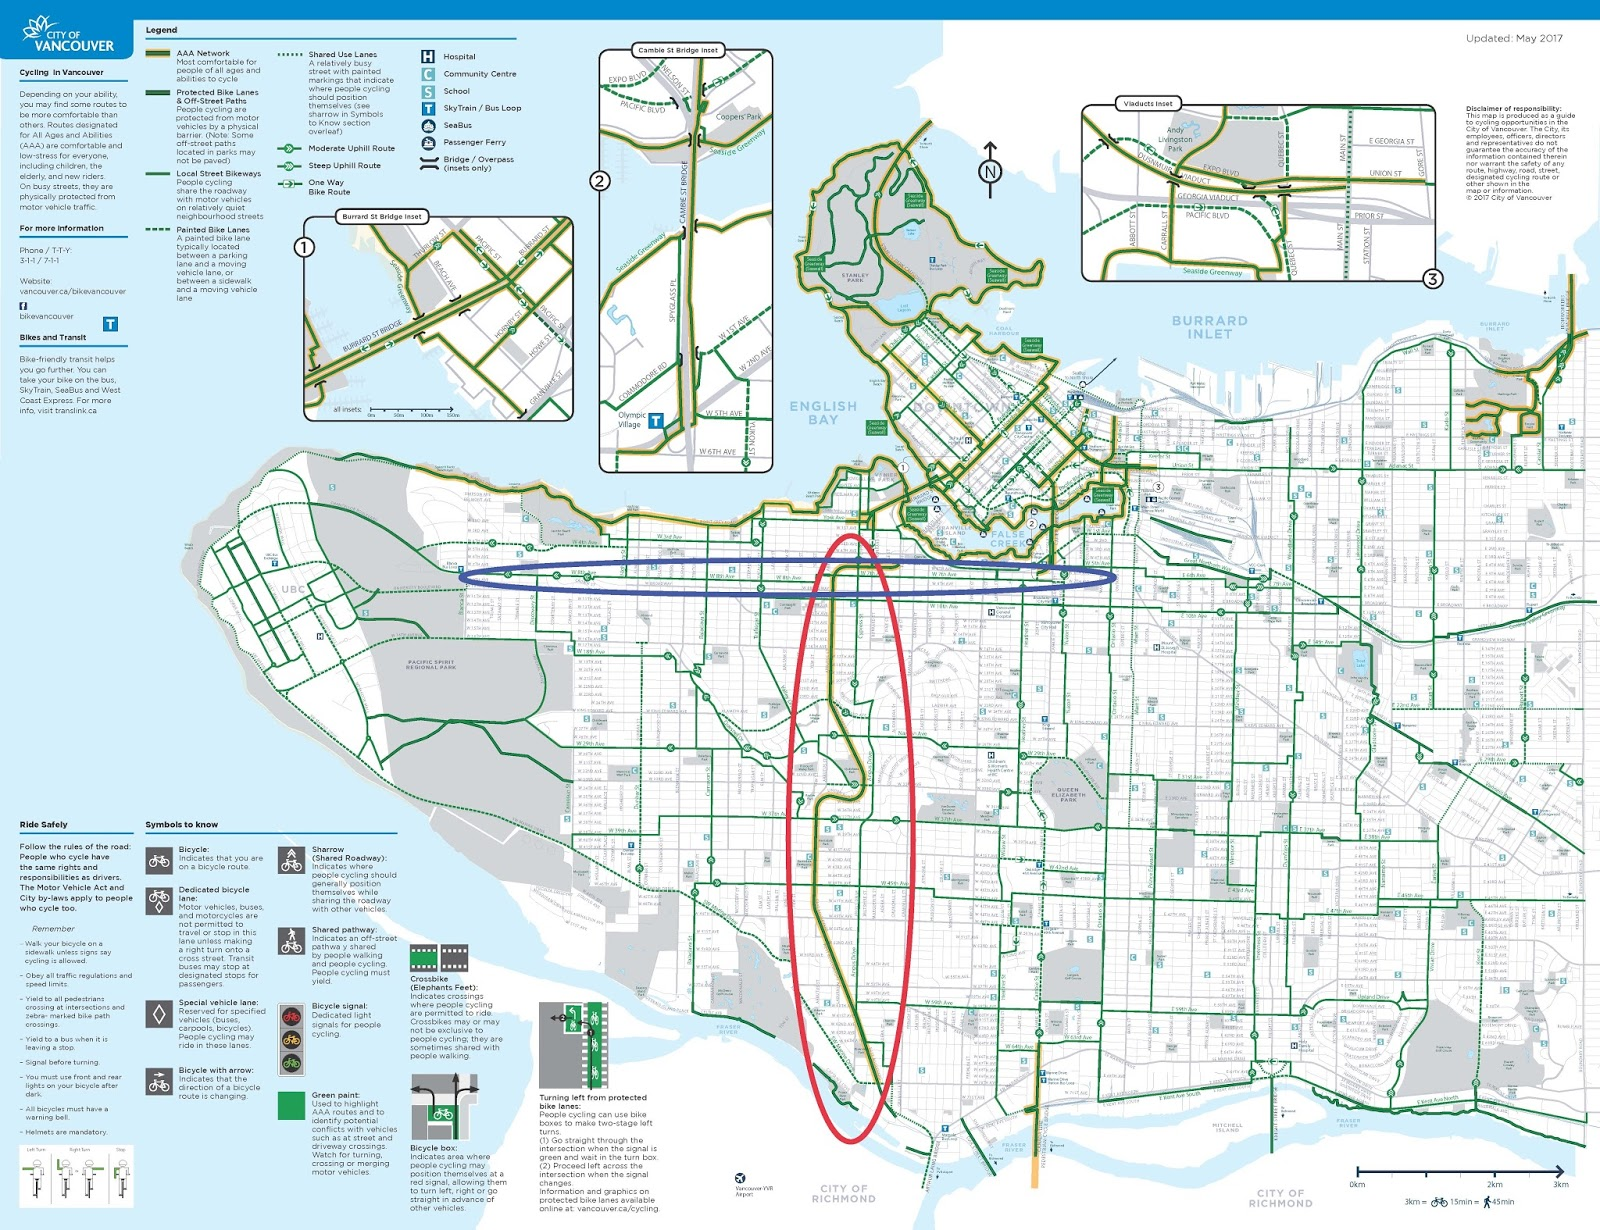 the quality of the temporary arbutus greenway rivals the quality of many of seattle s permanent trails like many of the facilities in vancouver